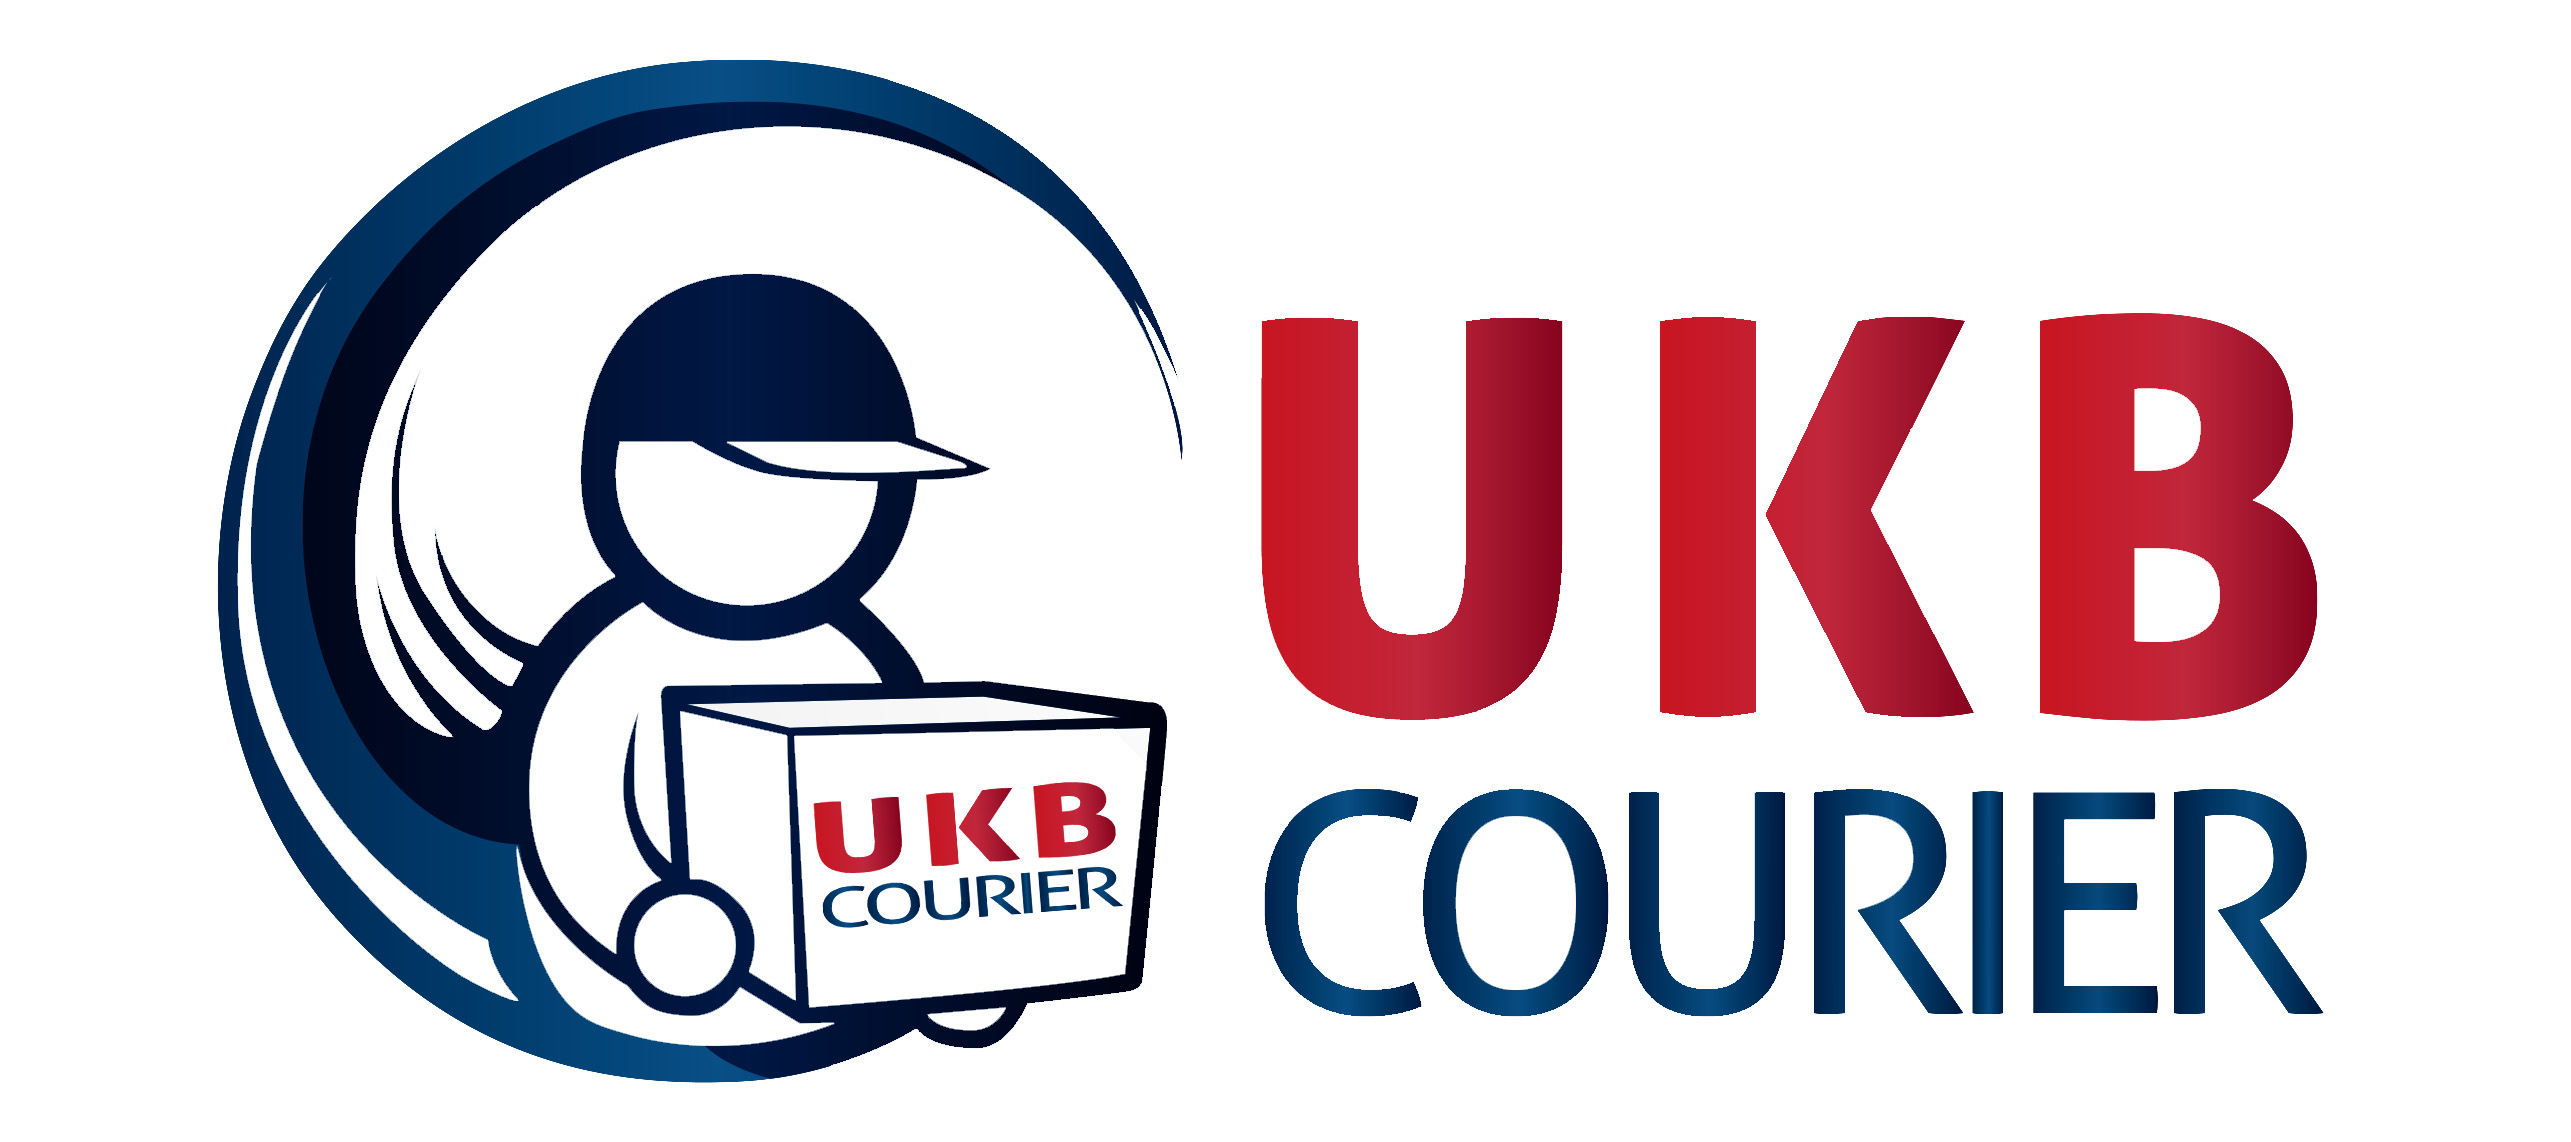 UKBCOURIER